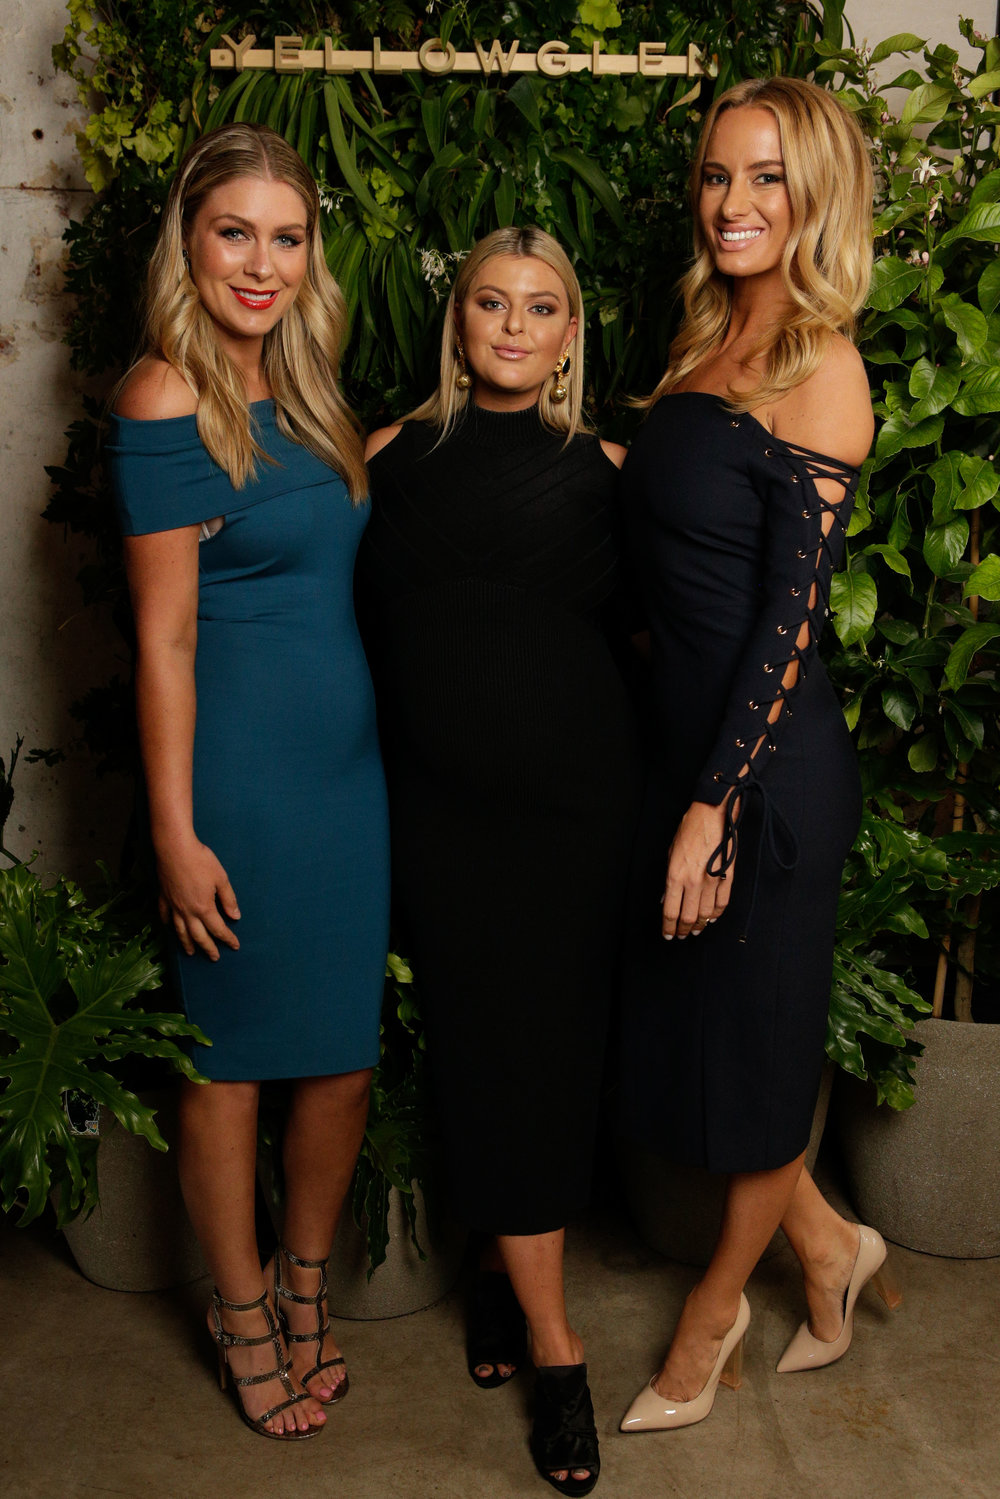 yellowglen-terrace-melbourne-cup-launch-dinner-rebeccah-emma-samantha.jpg